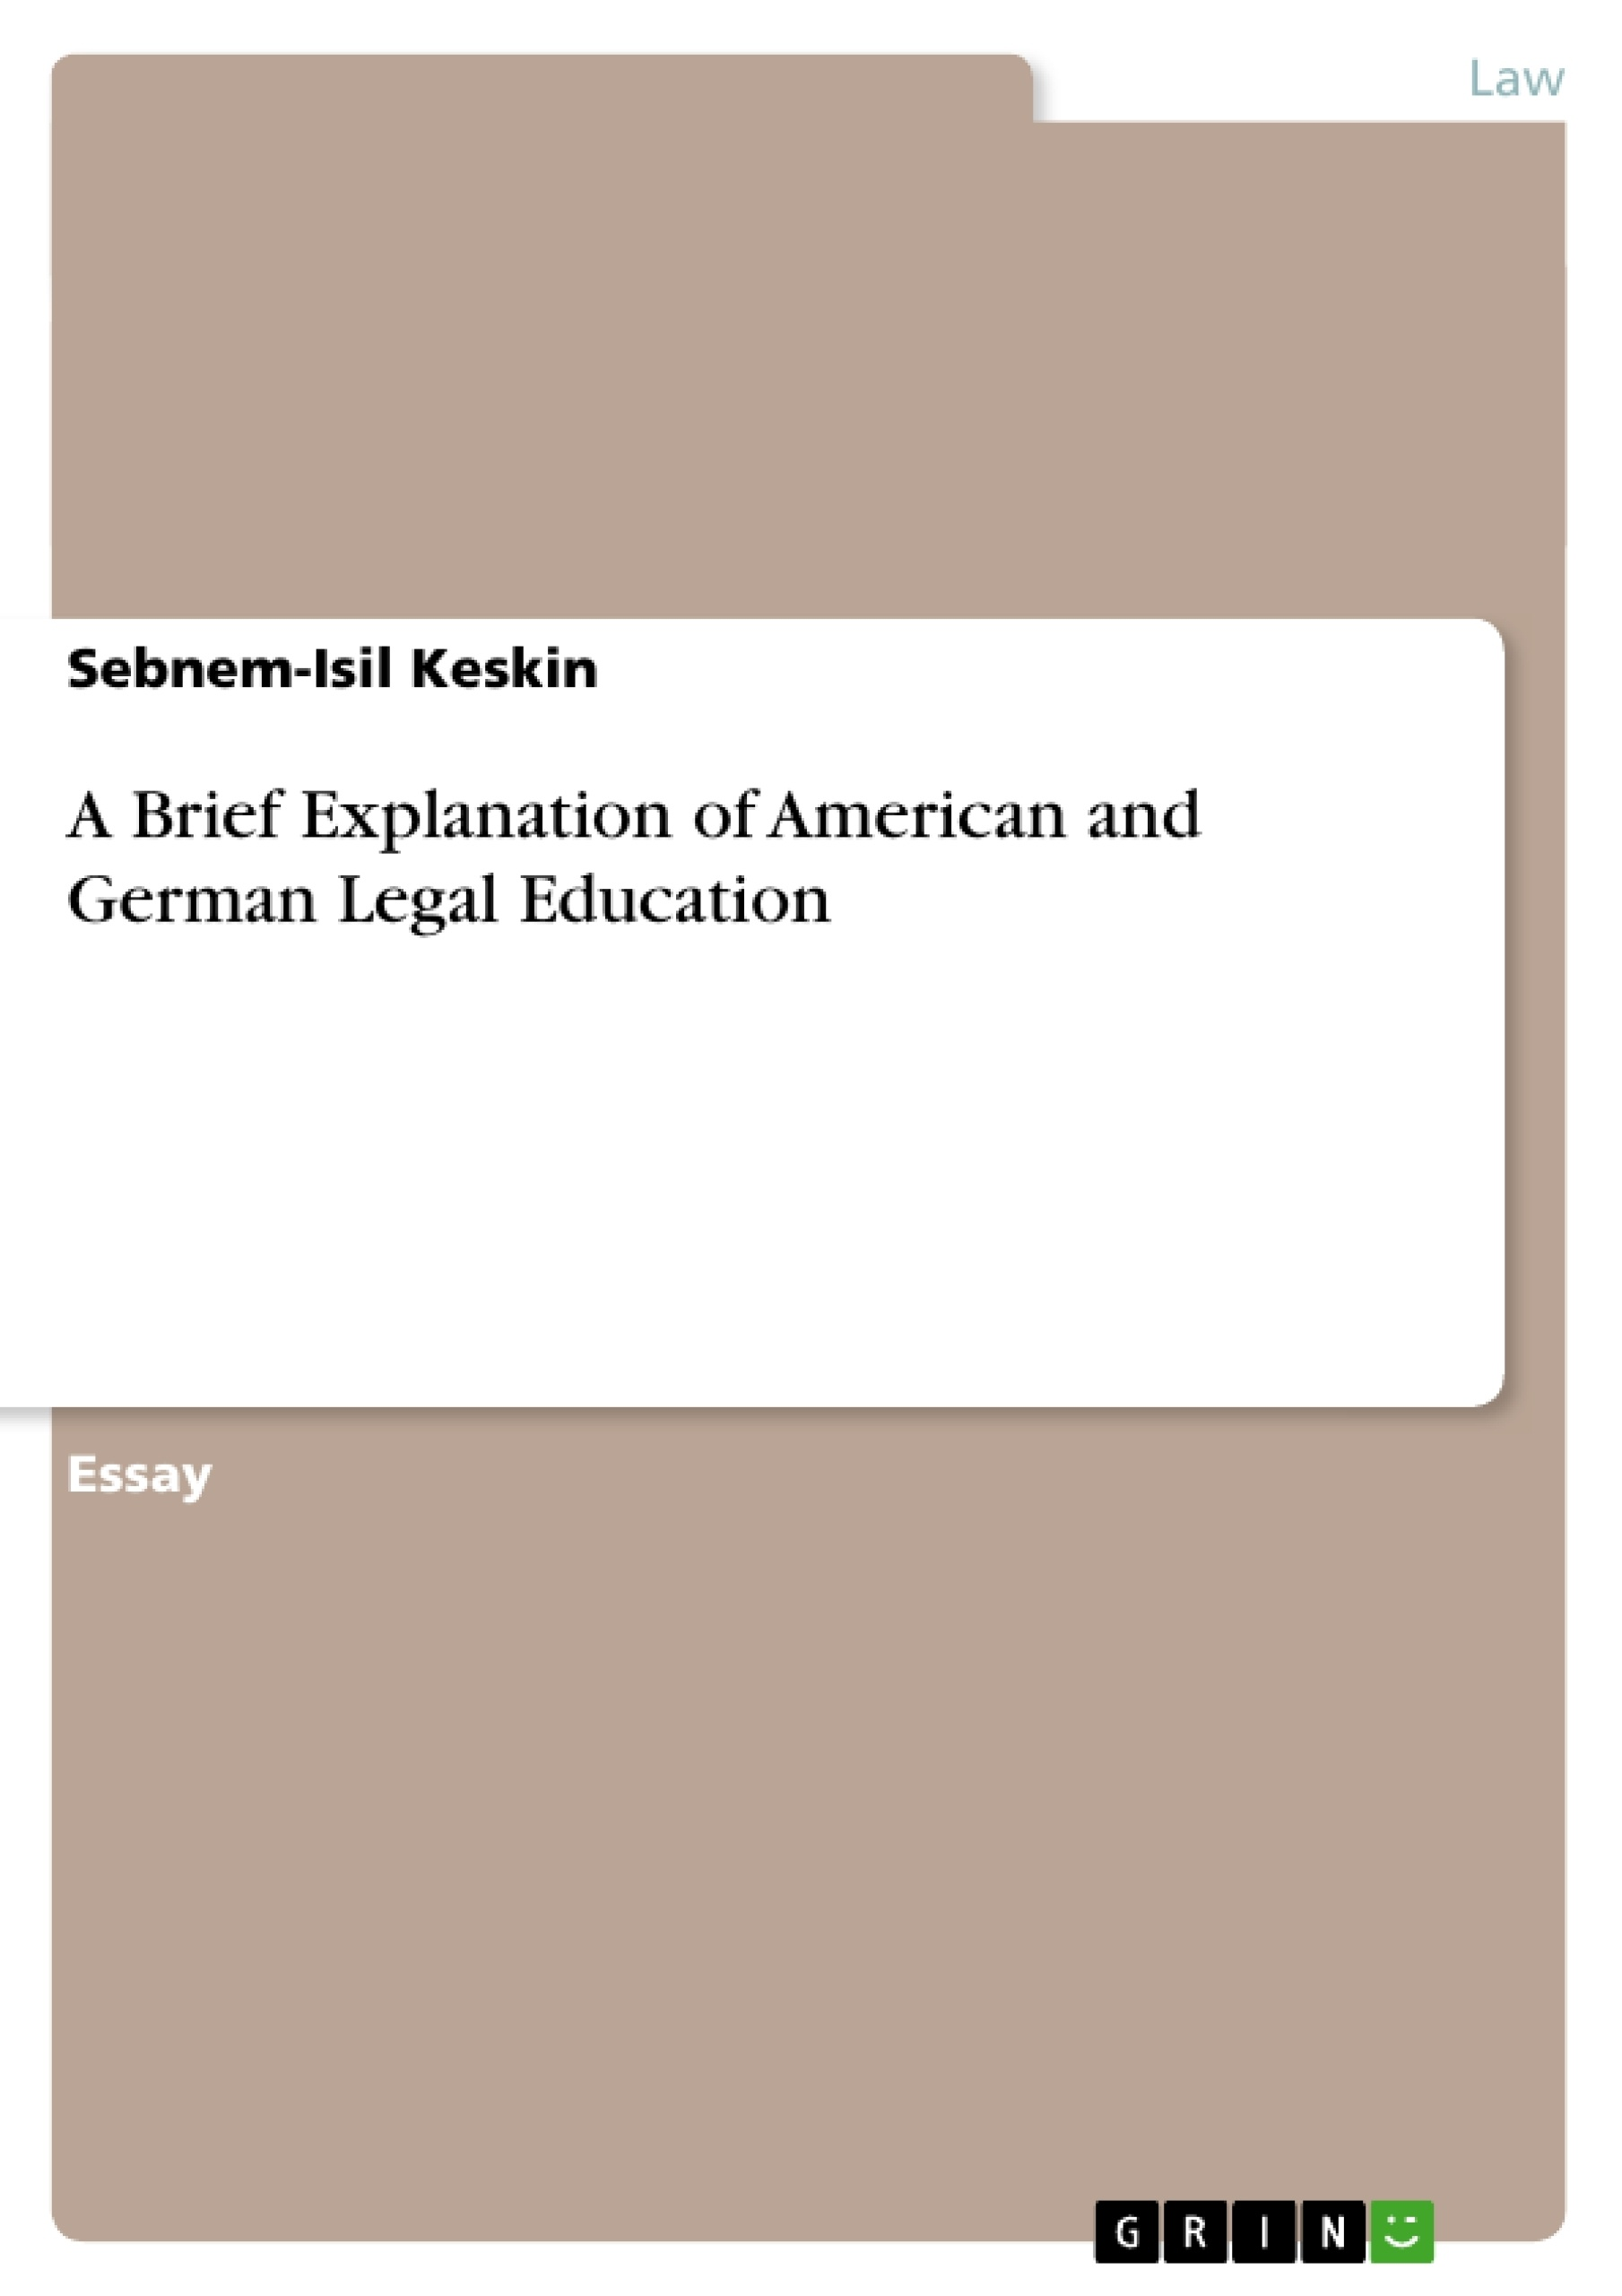 Title: A Brief Explanation of American and German Legal Education